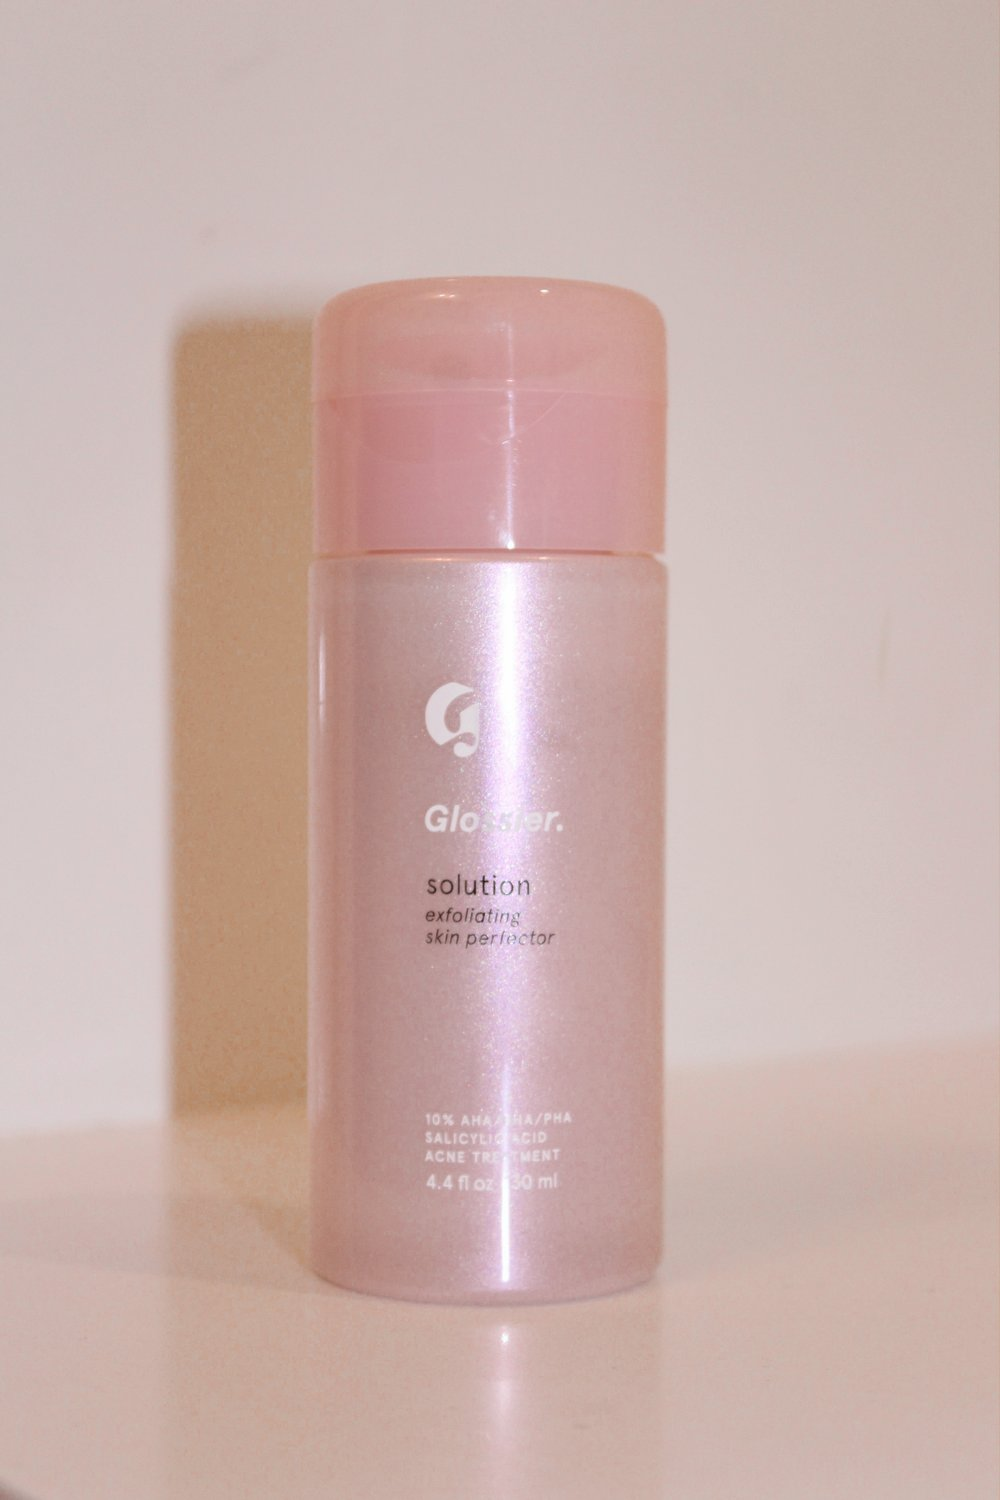 glossier solution - The Glossier Solution is a chemical exfoliator that helps purify and clear skin in 4 weeks. I have been using this for a few months and so far I'm loving it! It has helped reduce redness and blemishes for me, as well as clogged pores. I use this every night and it is amazing.